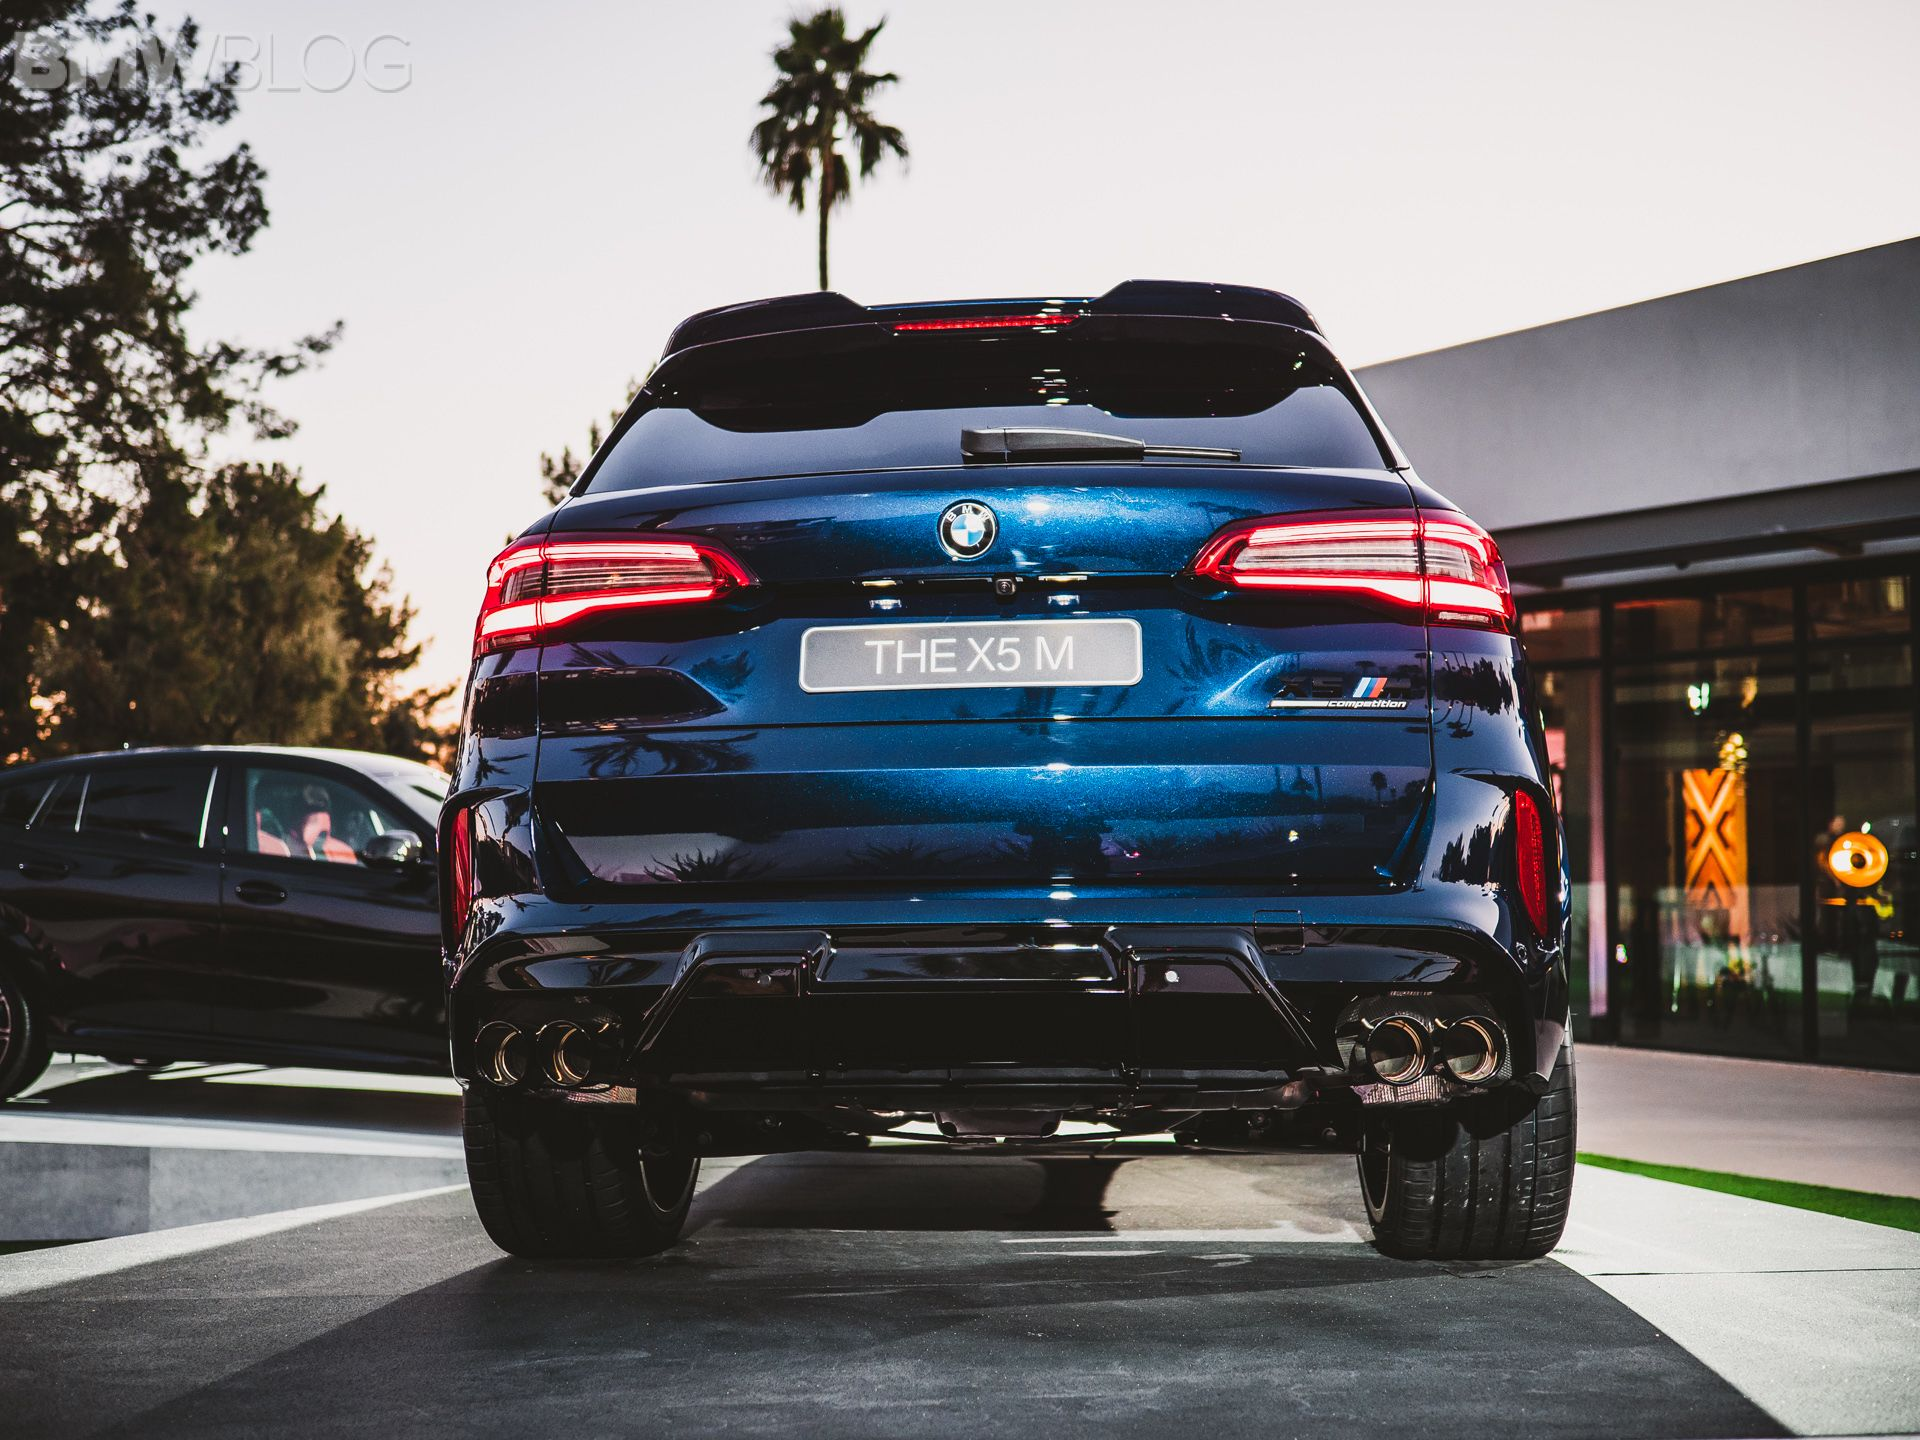 2020 Bmw X5 M And X6 M Competition Models Cold Start And Revs In 2020 Bmw Bmw X5 M Bmw X5